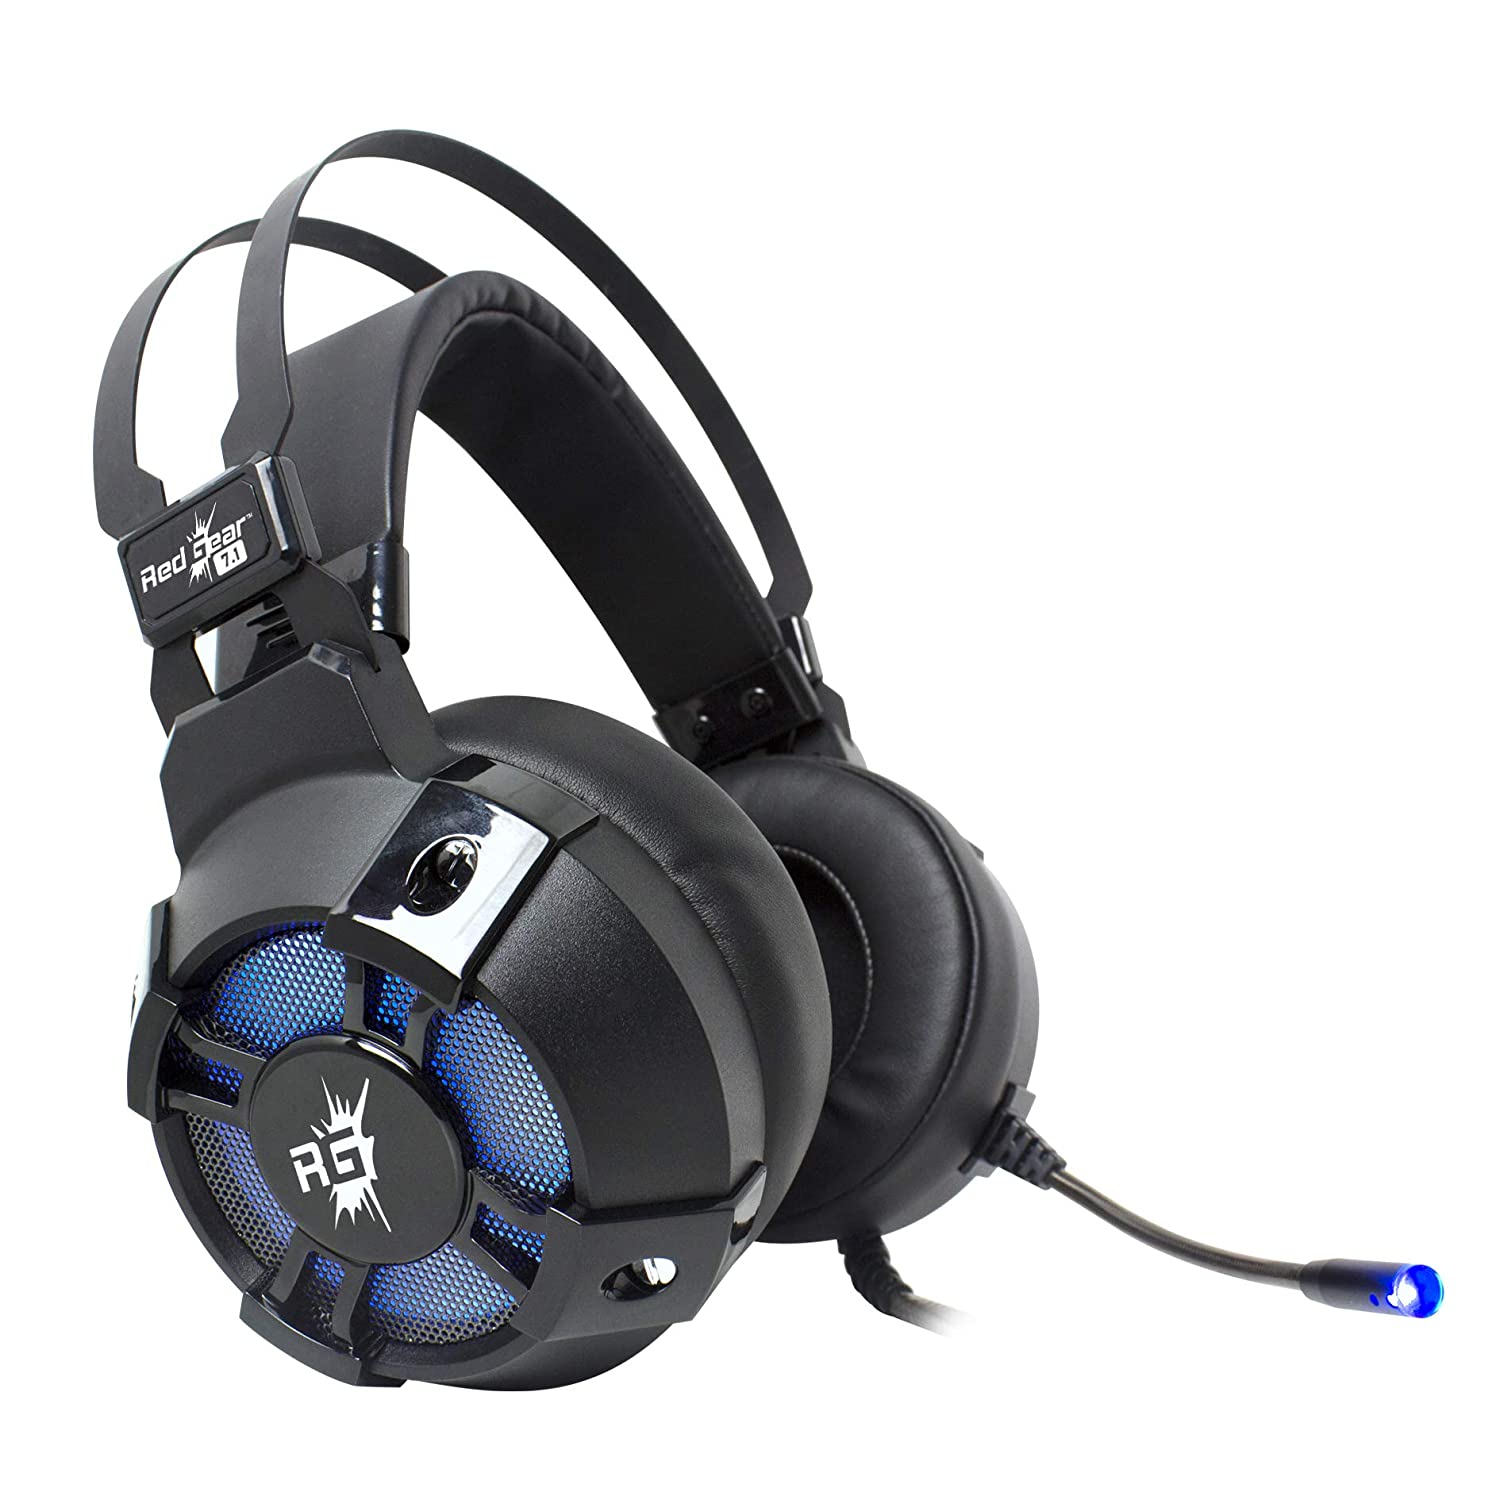 Redgear Cosmo 7.1 USB Gaming Headphones with RGB LED Effect,